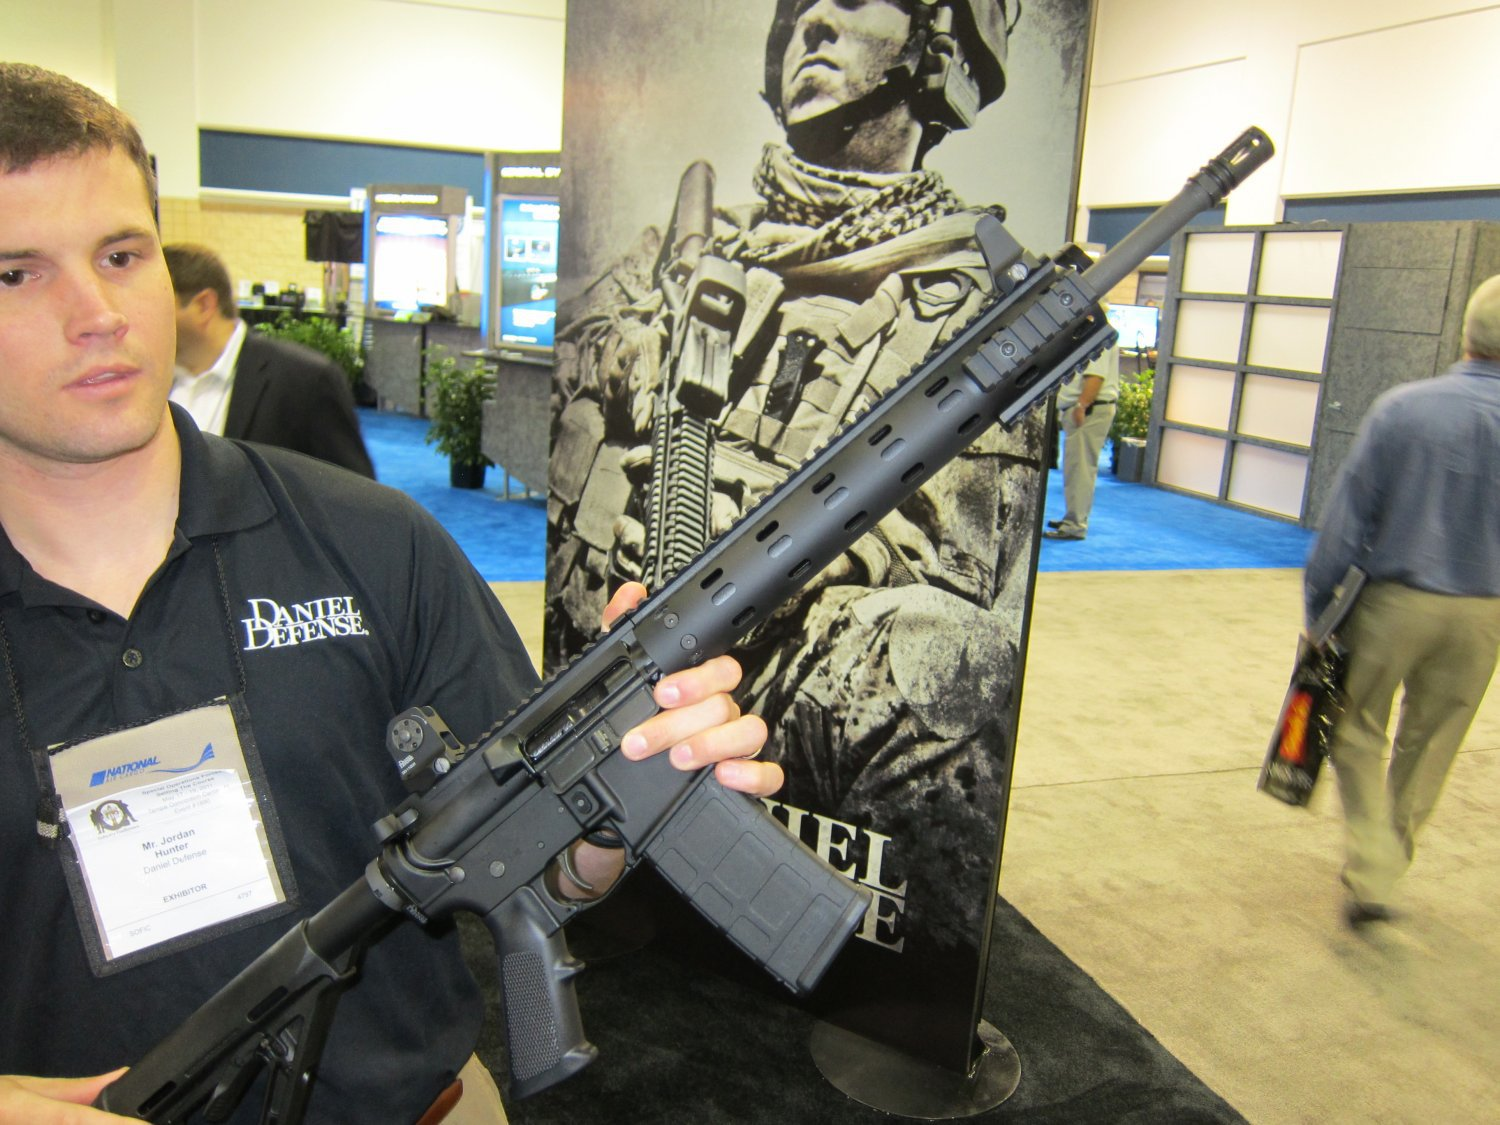 Daniel Defense DDM4v7 (also written DDM4 v7) Mid-Length Tactical AR Carbine/Rifle Outfitted with DD MFR 12.0 (Daniel Defense Modular Float Rail 12.0) Lightweight Modular Tactical Handguard/Rail System and Contour Gun Cam (Video Camera) System at SOFIC 2011 (Video!)